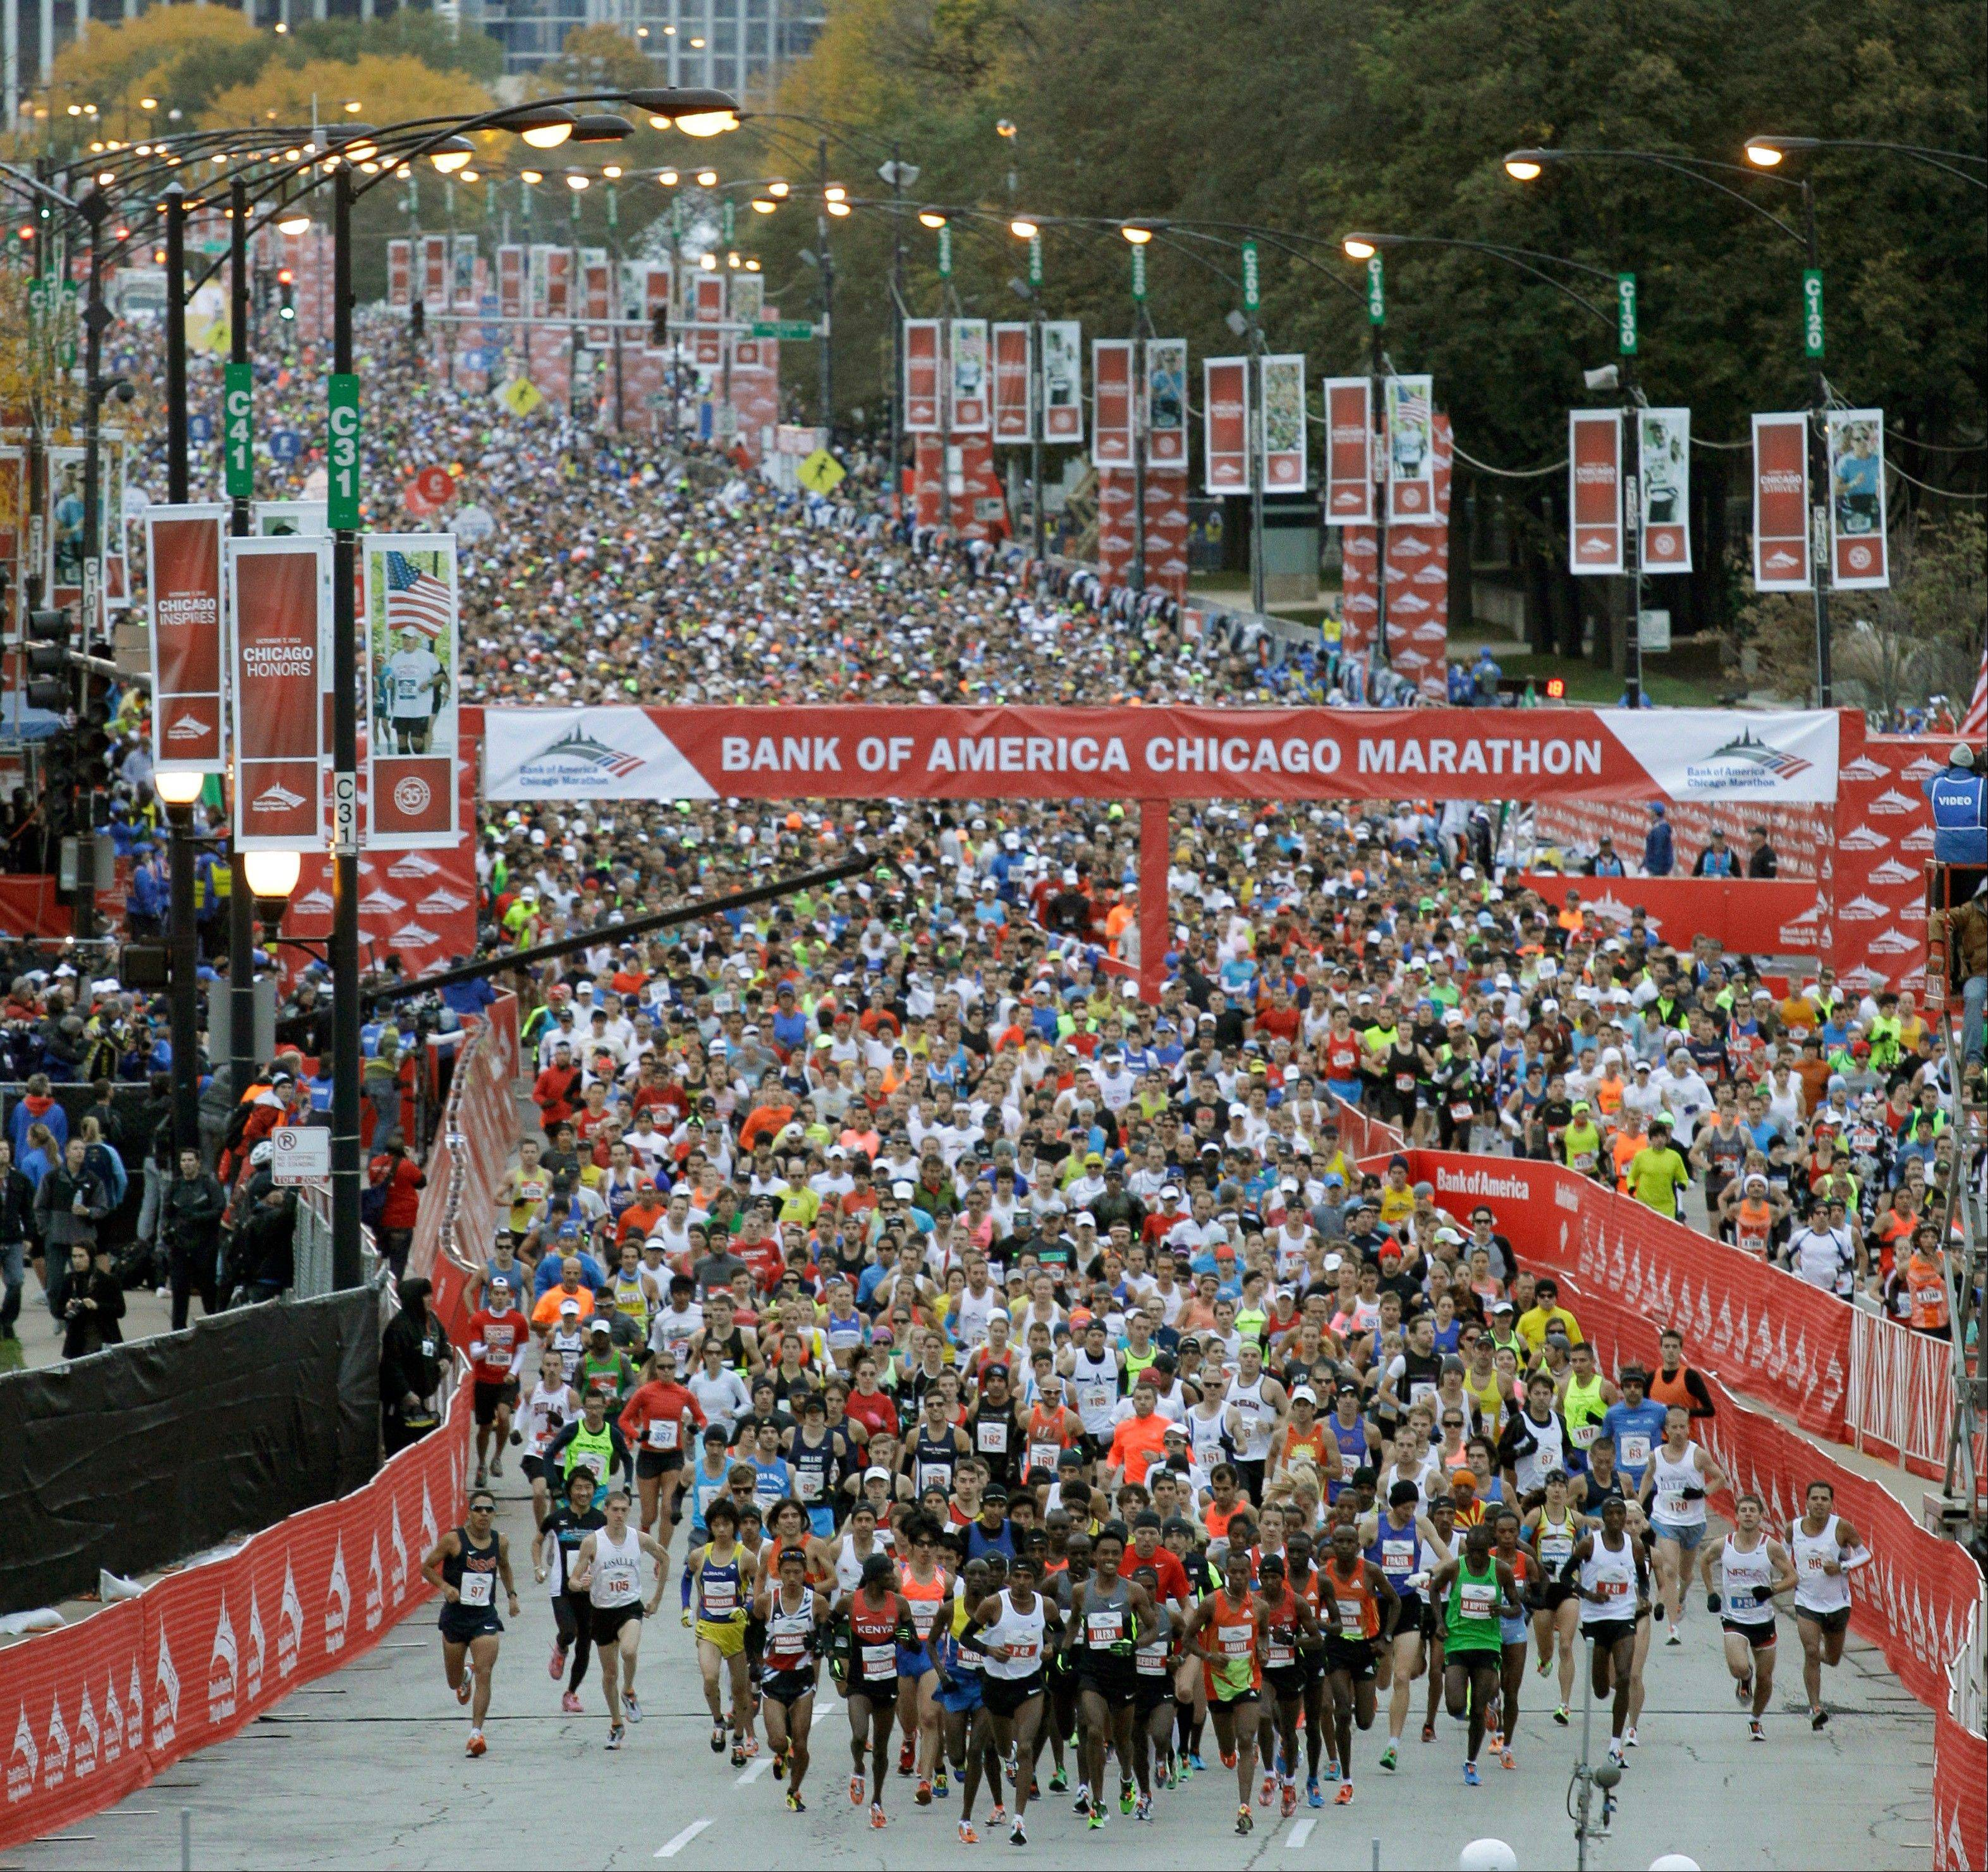 More than 37,000 runners finished the 2012 Chicago Marathon last October, and registration opens Feb. 19 for the 2013 race, with a capacity of 45,000 entrants for the 36th annual race.